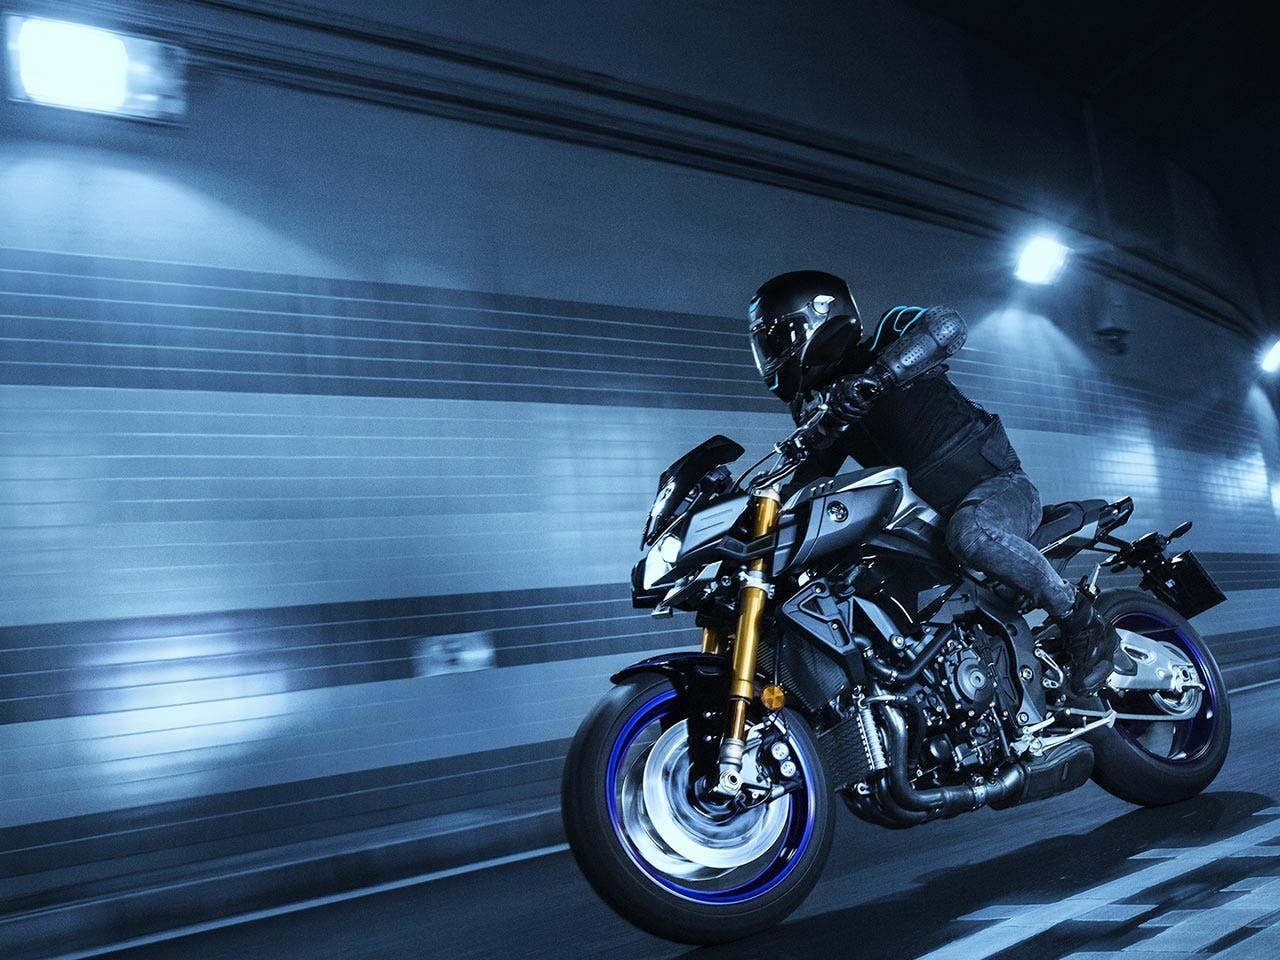 Yamaha MT-10 (SP) on the road